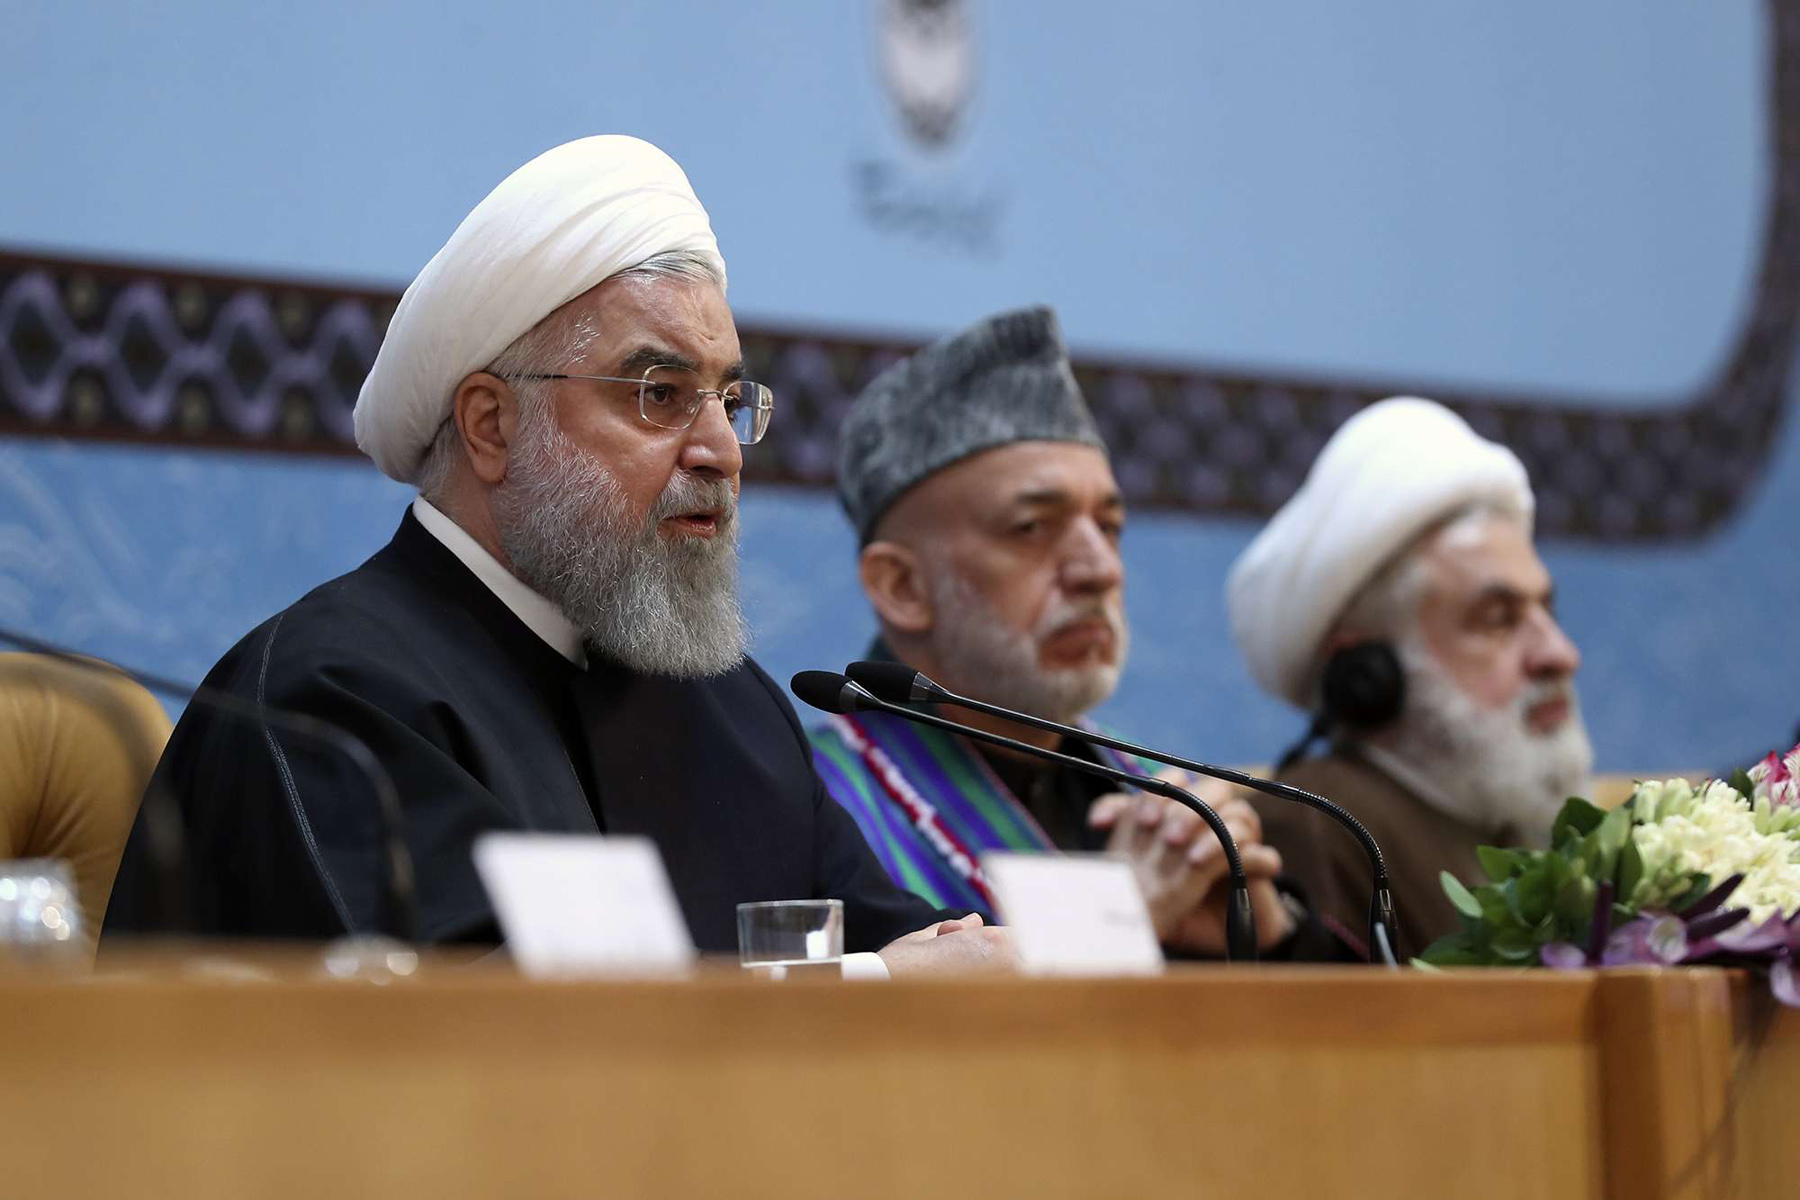 Torch bearer of division. (L-R) Iranian President Hassan Rohani speaks as former President of Afghanistan Hamid Karzai and Deputy Chief of Hezbollah Sheikh Naim Qassem listen during the 32nd annual Islamic Unity Conference in Tehran, November 24.  (Iranian Presidency)